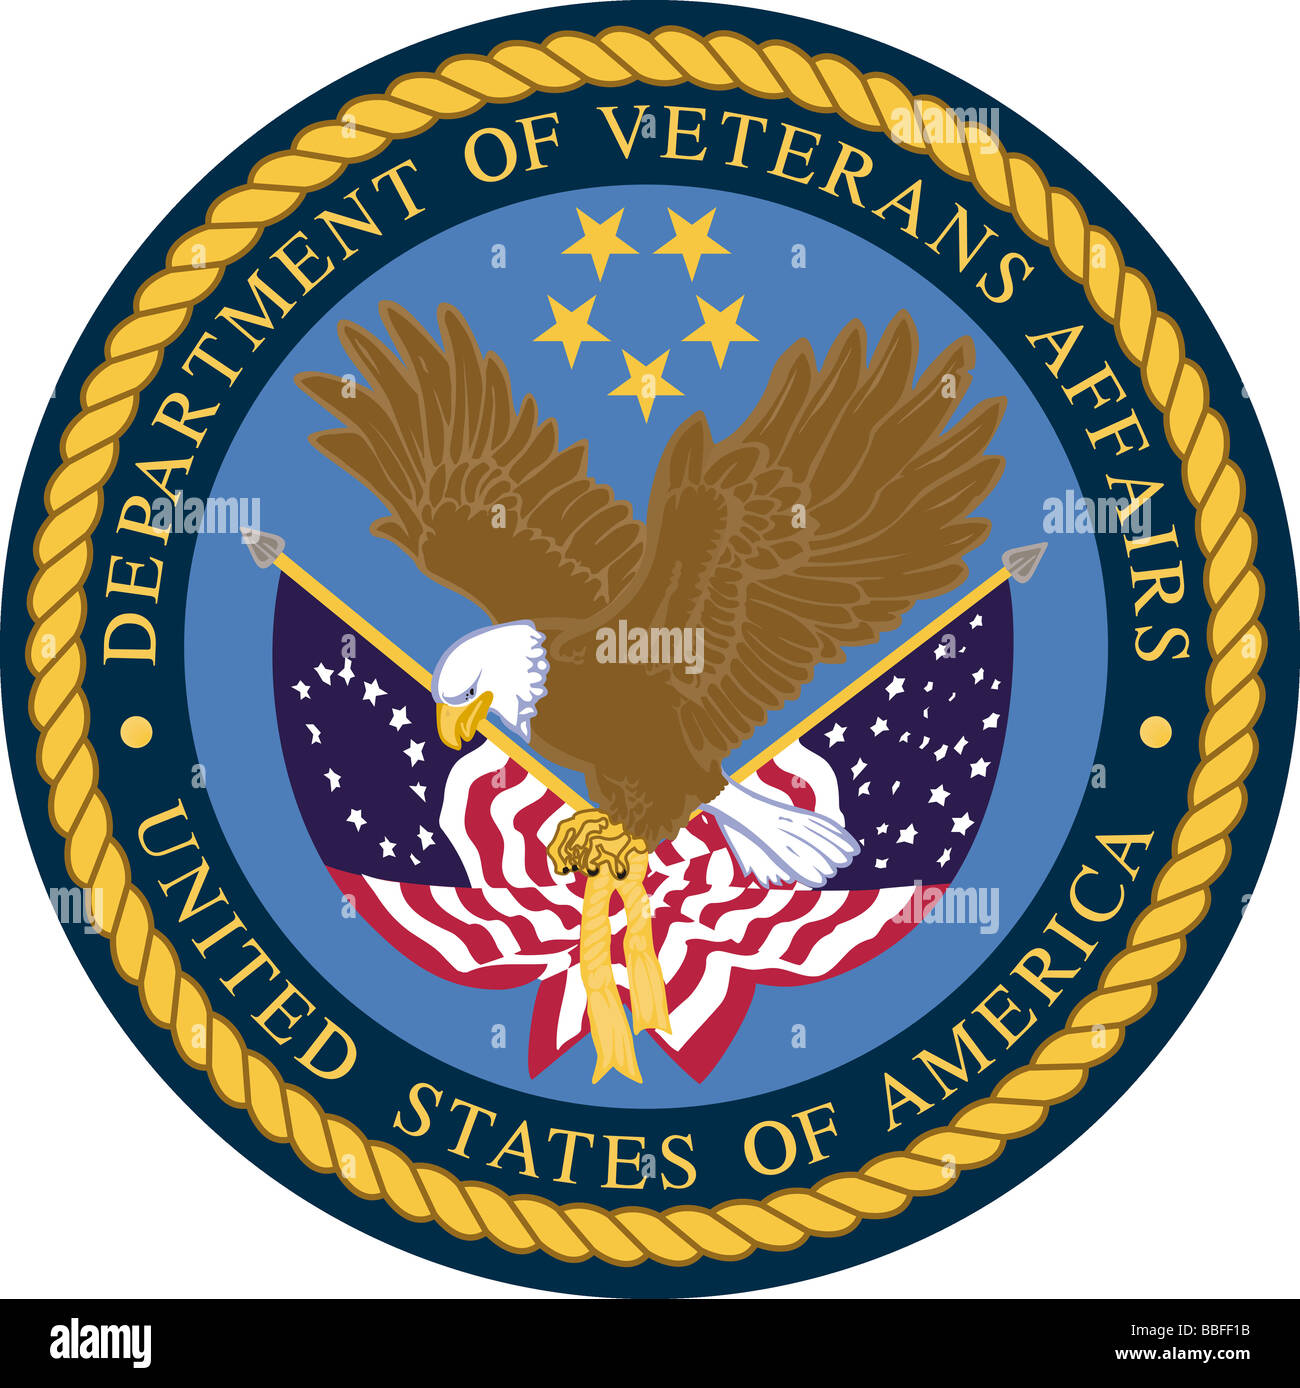 official crest for the united states department of veterans affairs